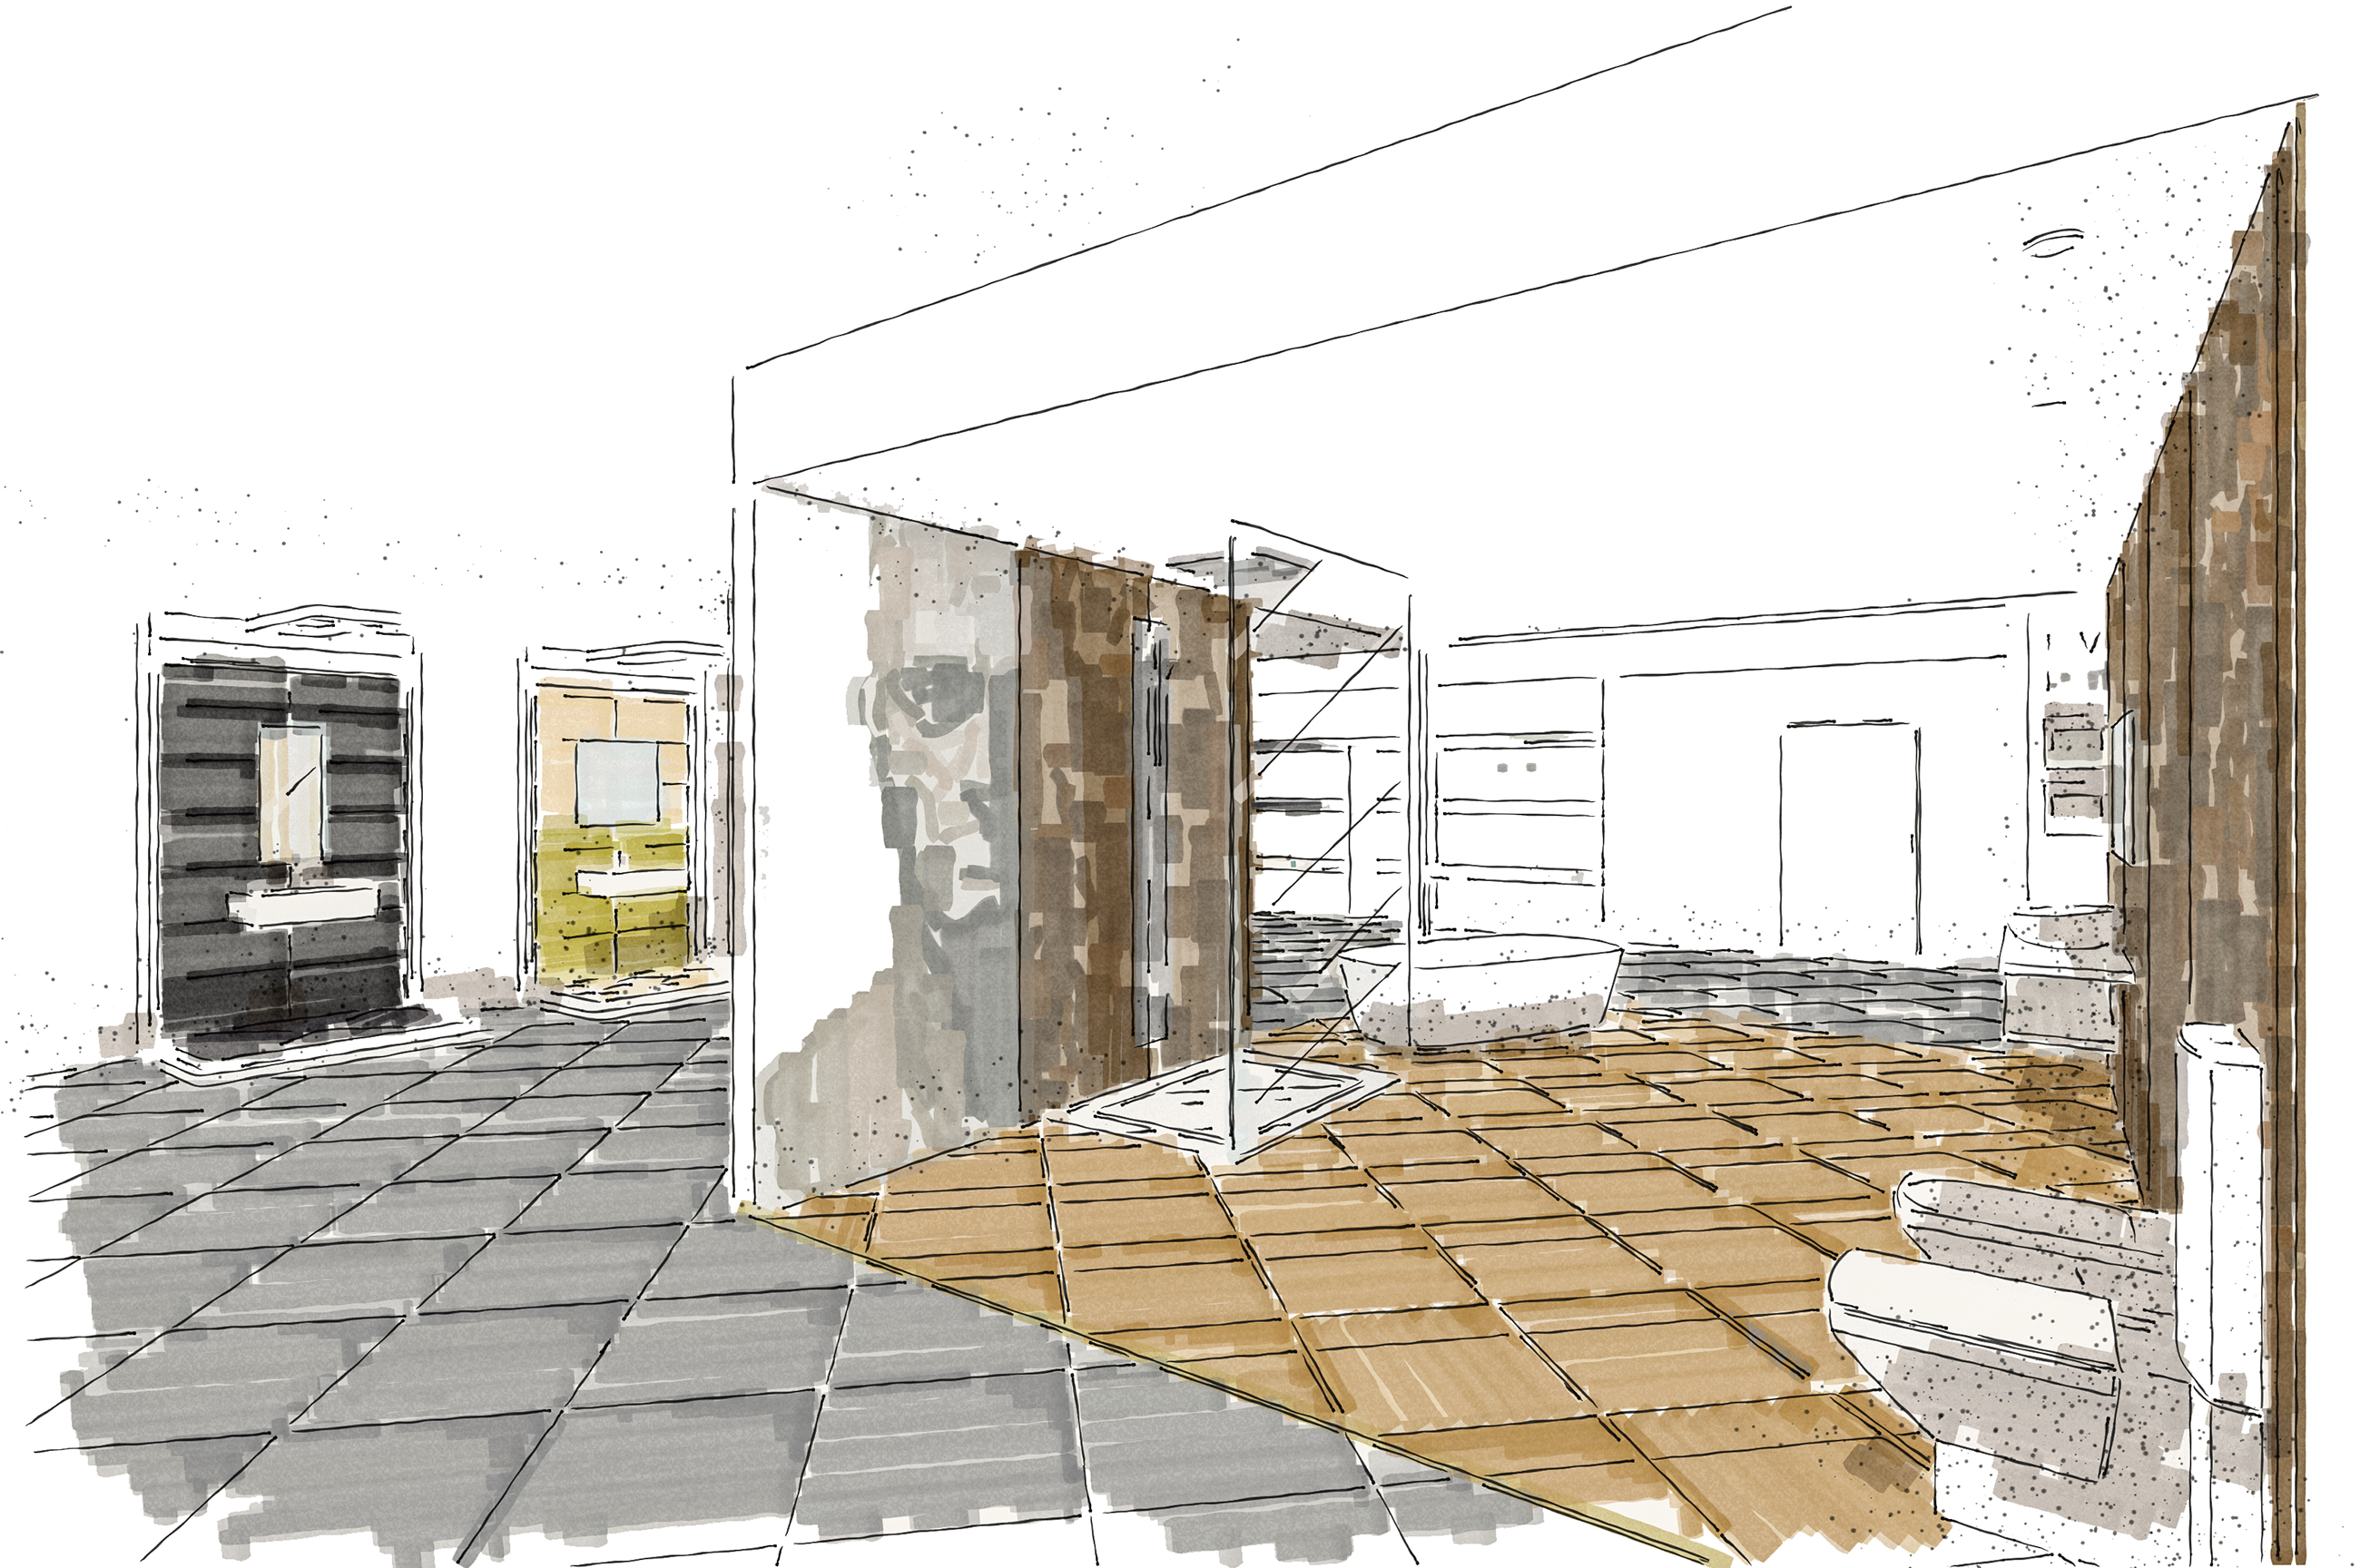 Tile Mountain showroom interior design drawing - mezzanine